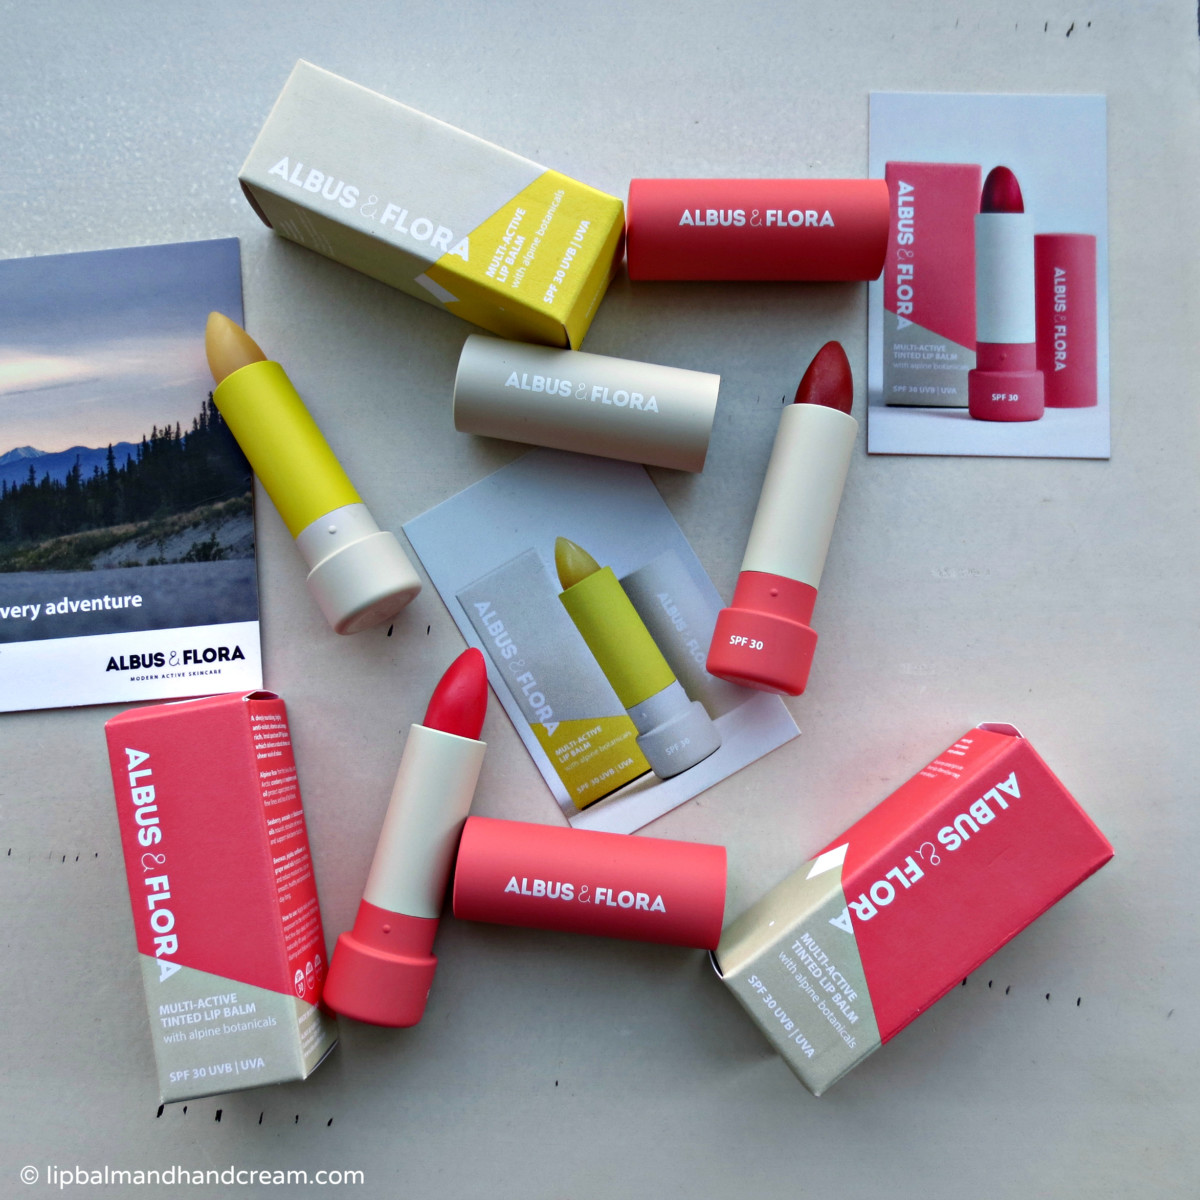 A new discovery in lip balms! Albus & Flora multi-active lip balms